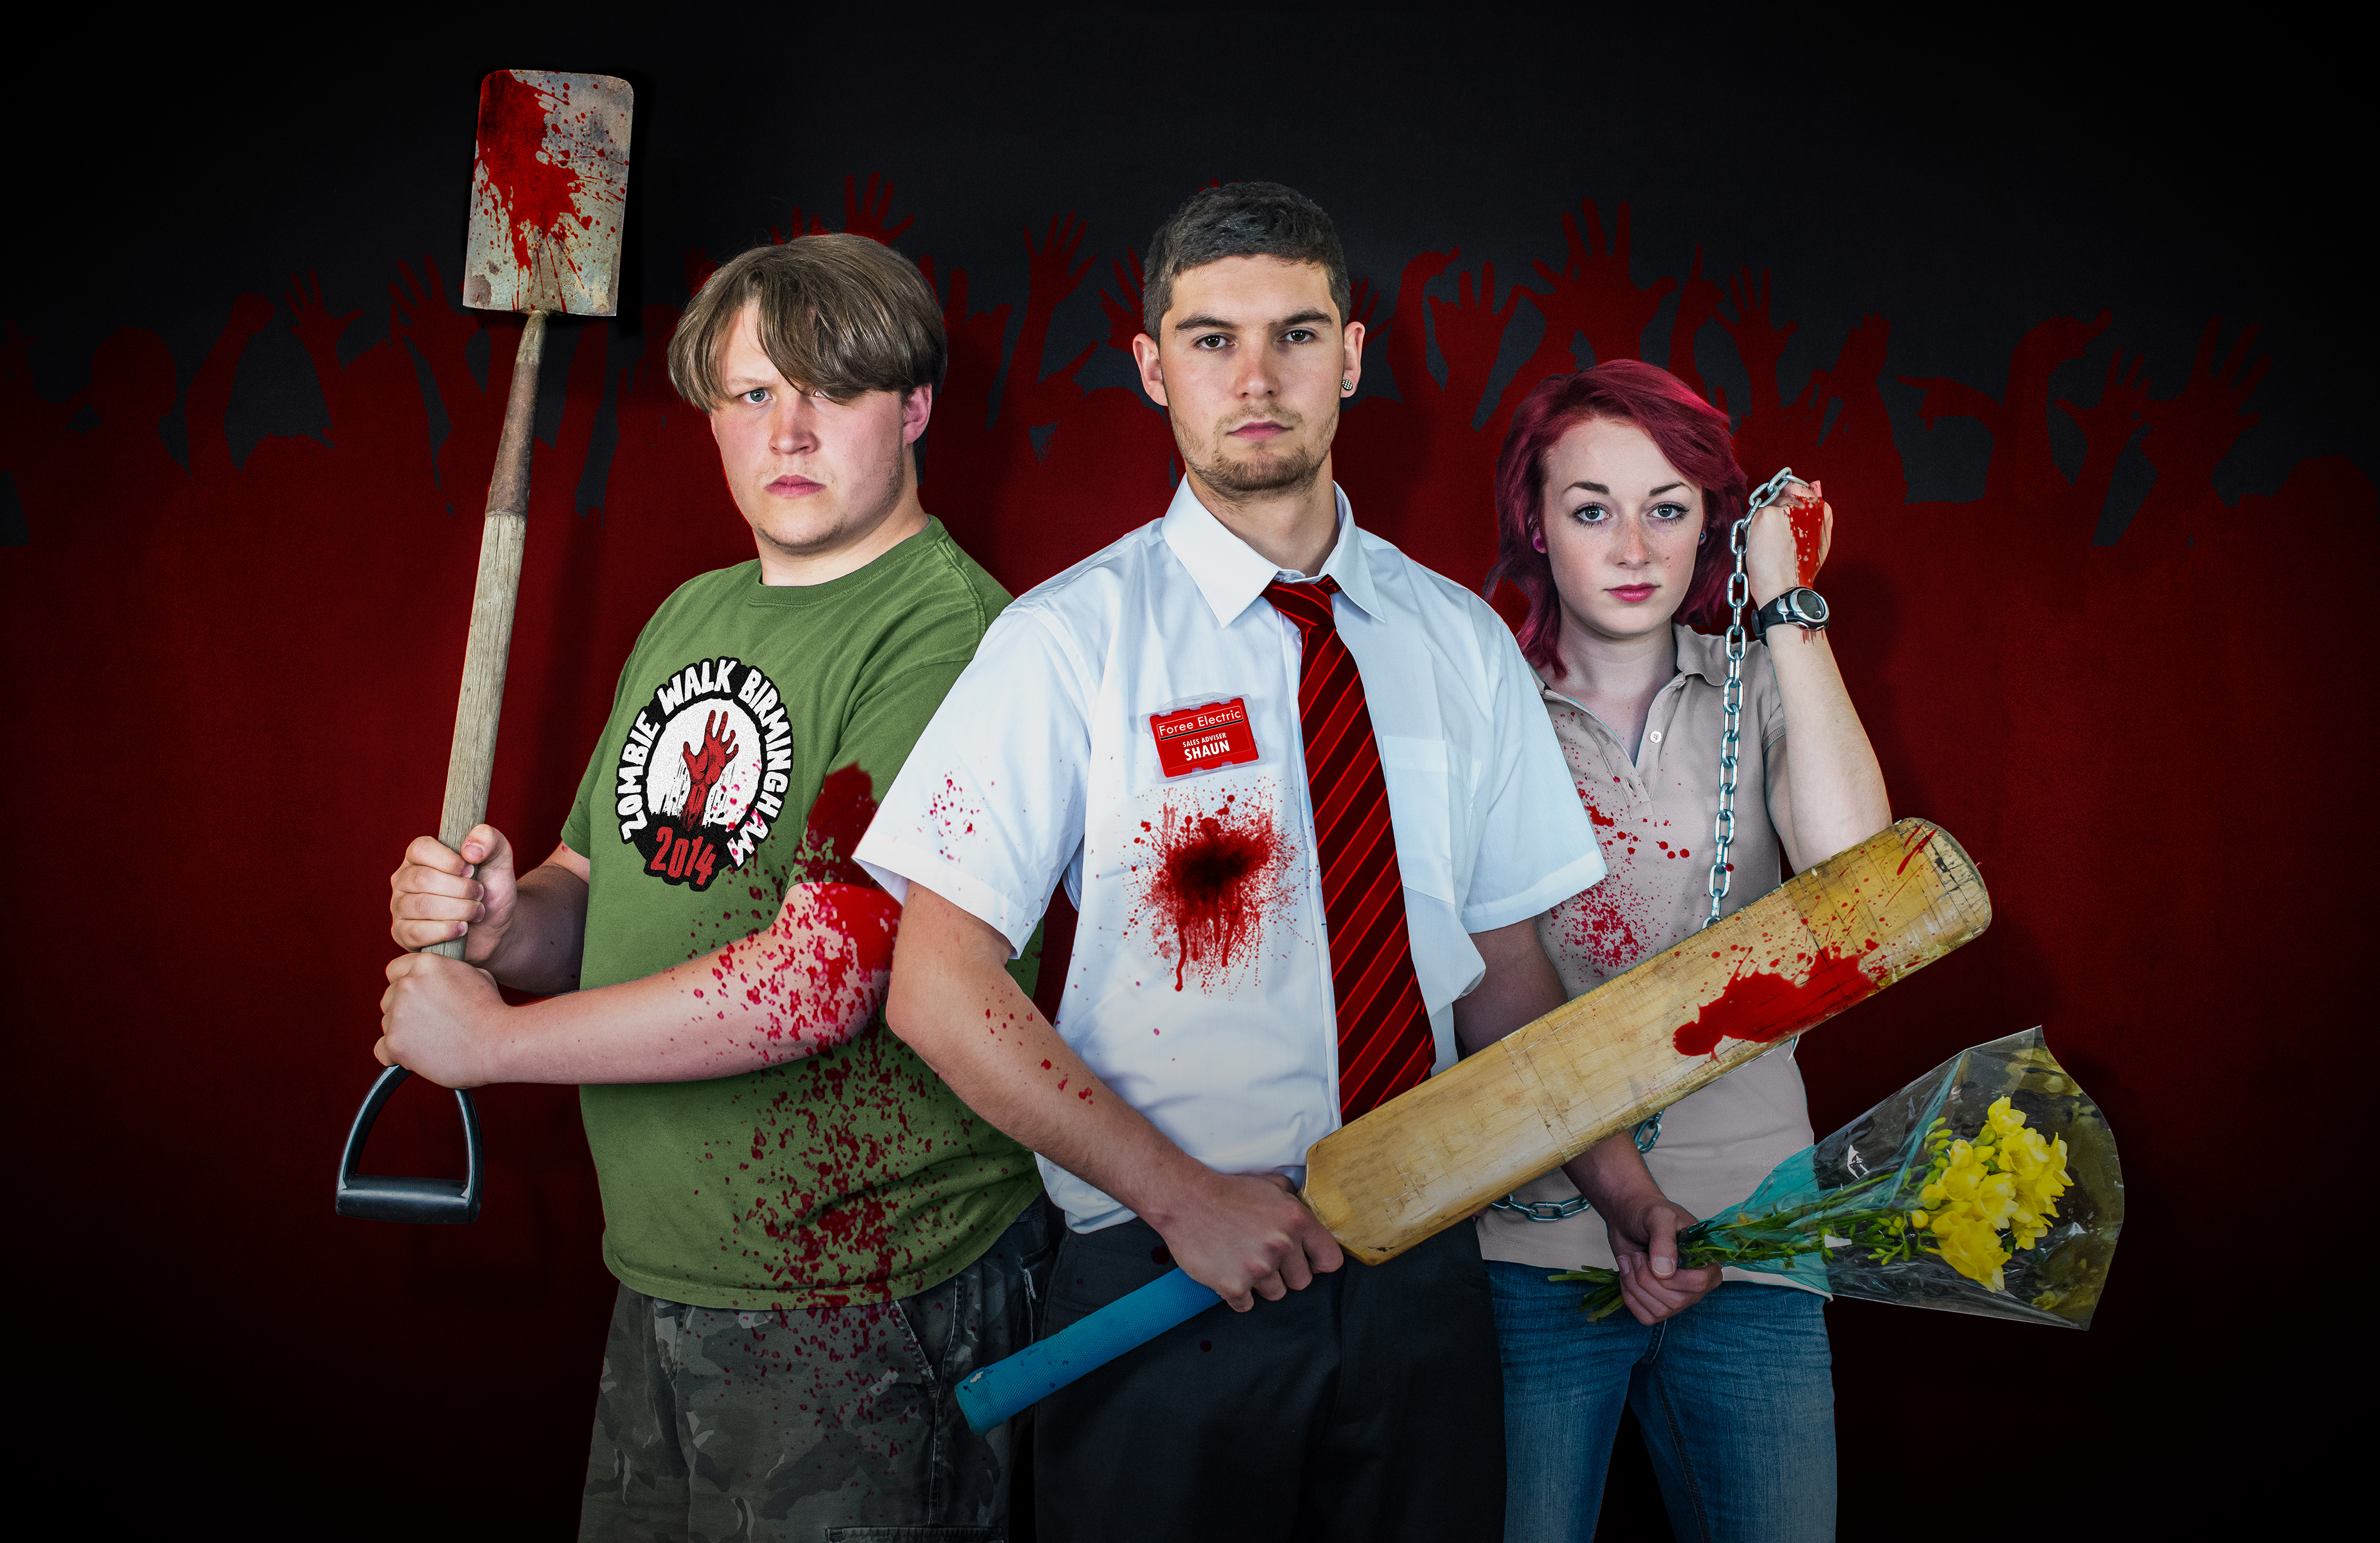 Zombie fans will be dressing up as Simon Pegg's character from film Shaun of the Dead, all for charity